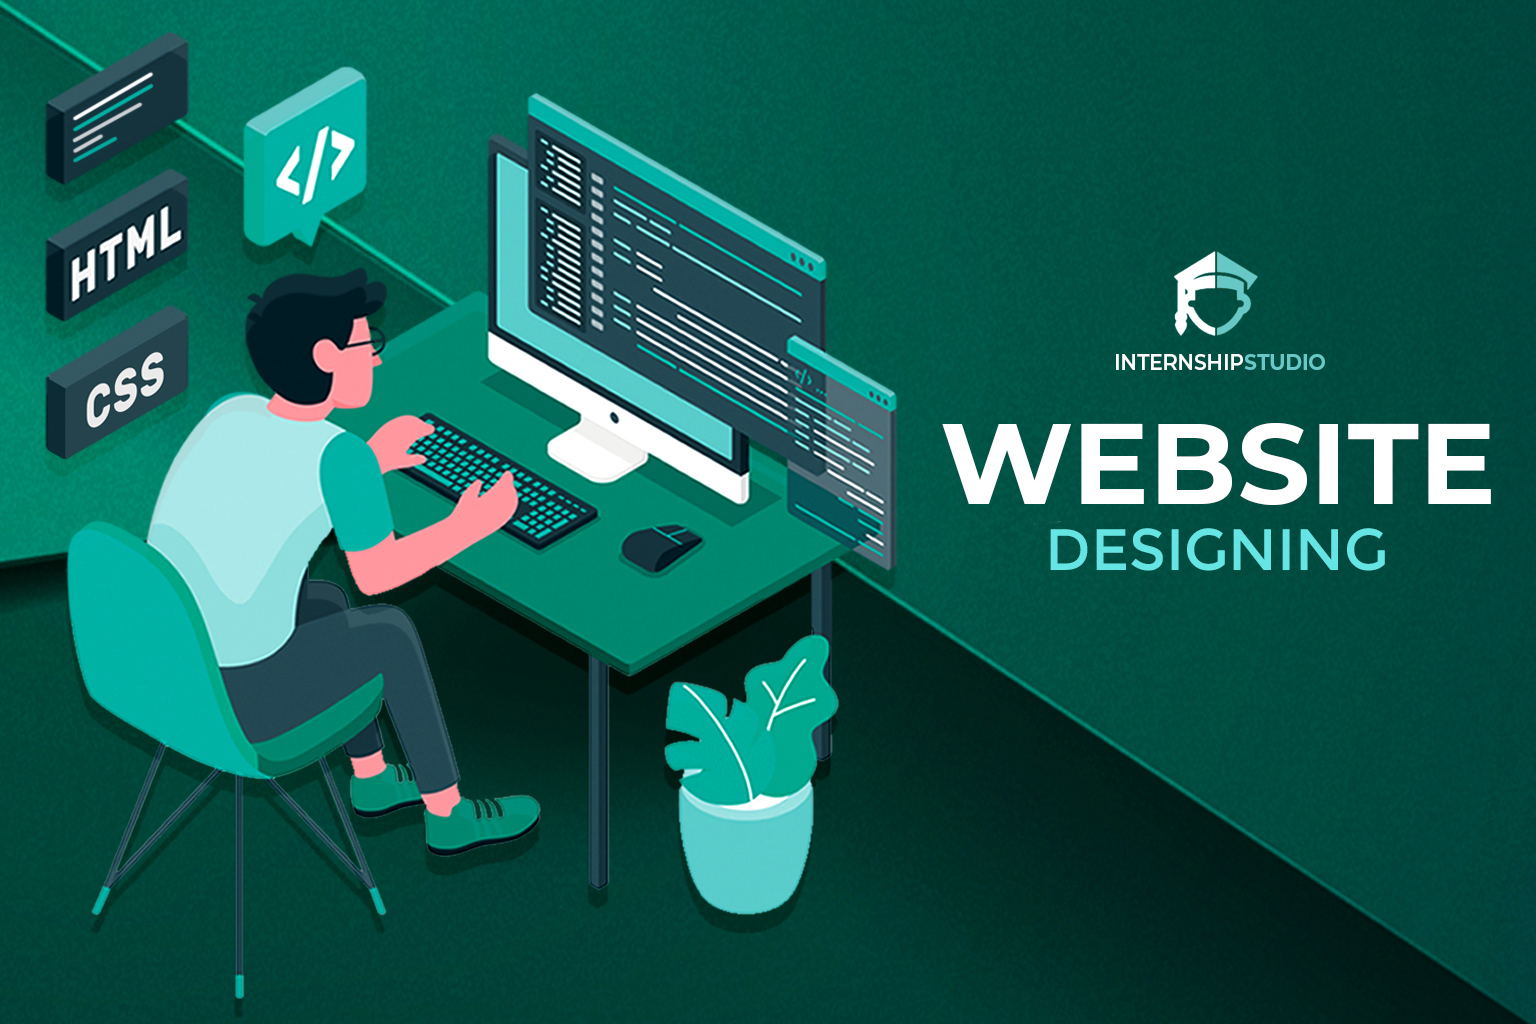 Website Development Training & Internship Program